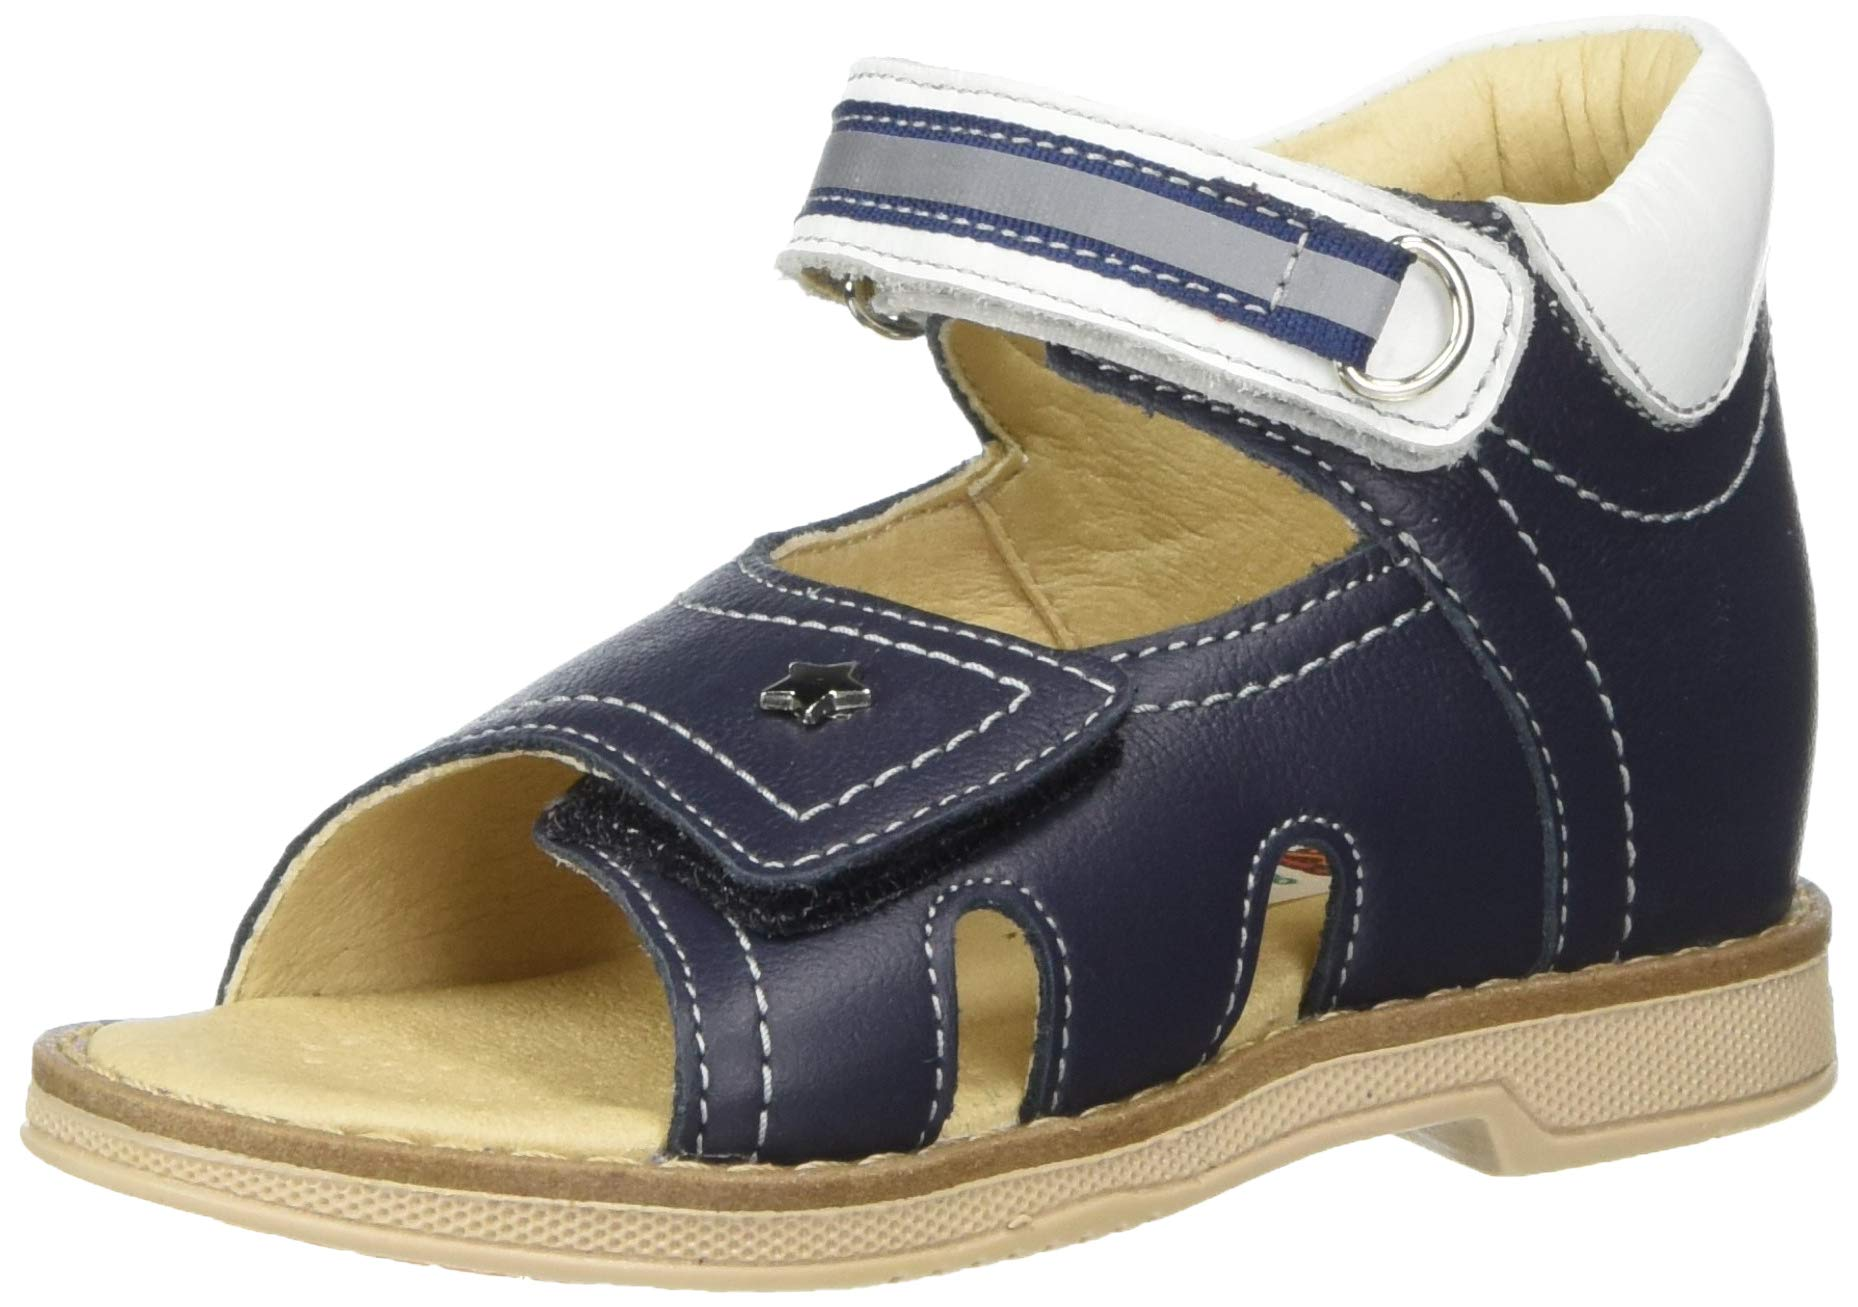 Orthopedic Kids Shoes for Boys and Girls TW-131 - Genuine Leather Sandals with 2 Fasteners, Non-Slip Amortizing Sole and Thomas's Heel (8, Dark Blue) by Baby Orthopedic Shoes